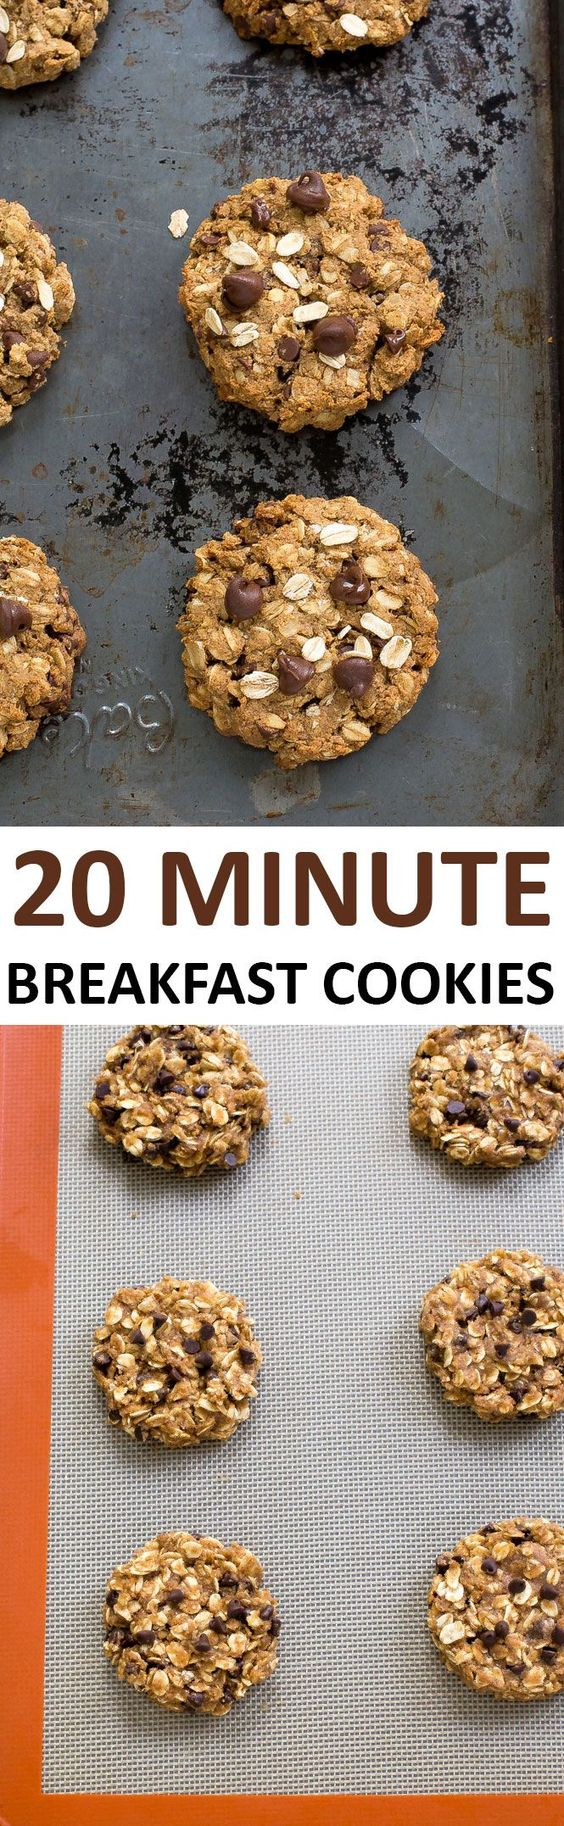 Breakfast Cookies loaded with oats, peanut butter and chocolate chips.